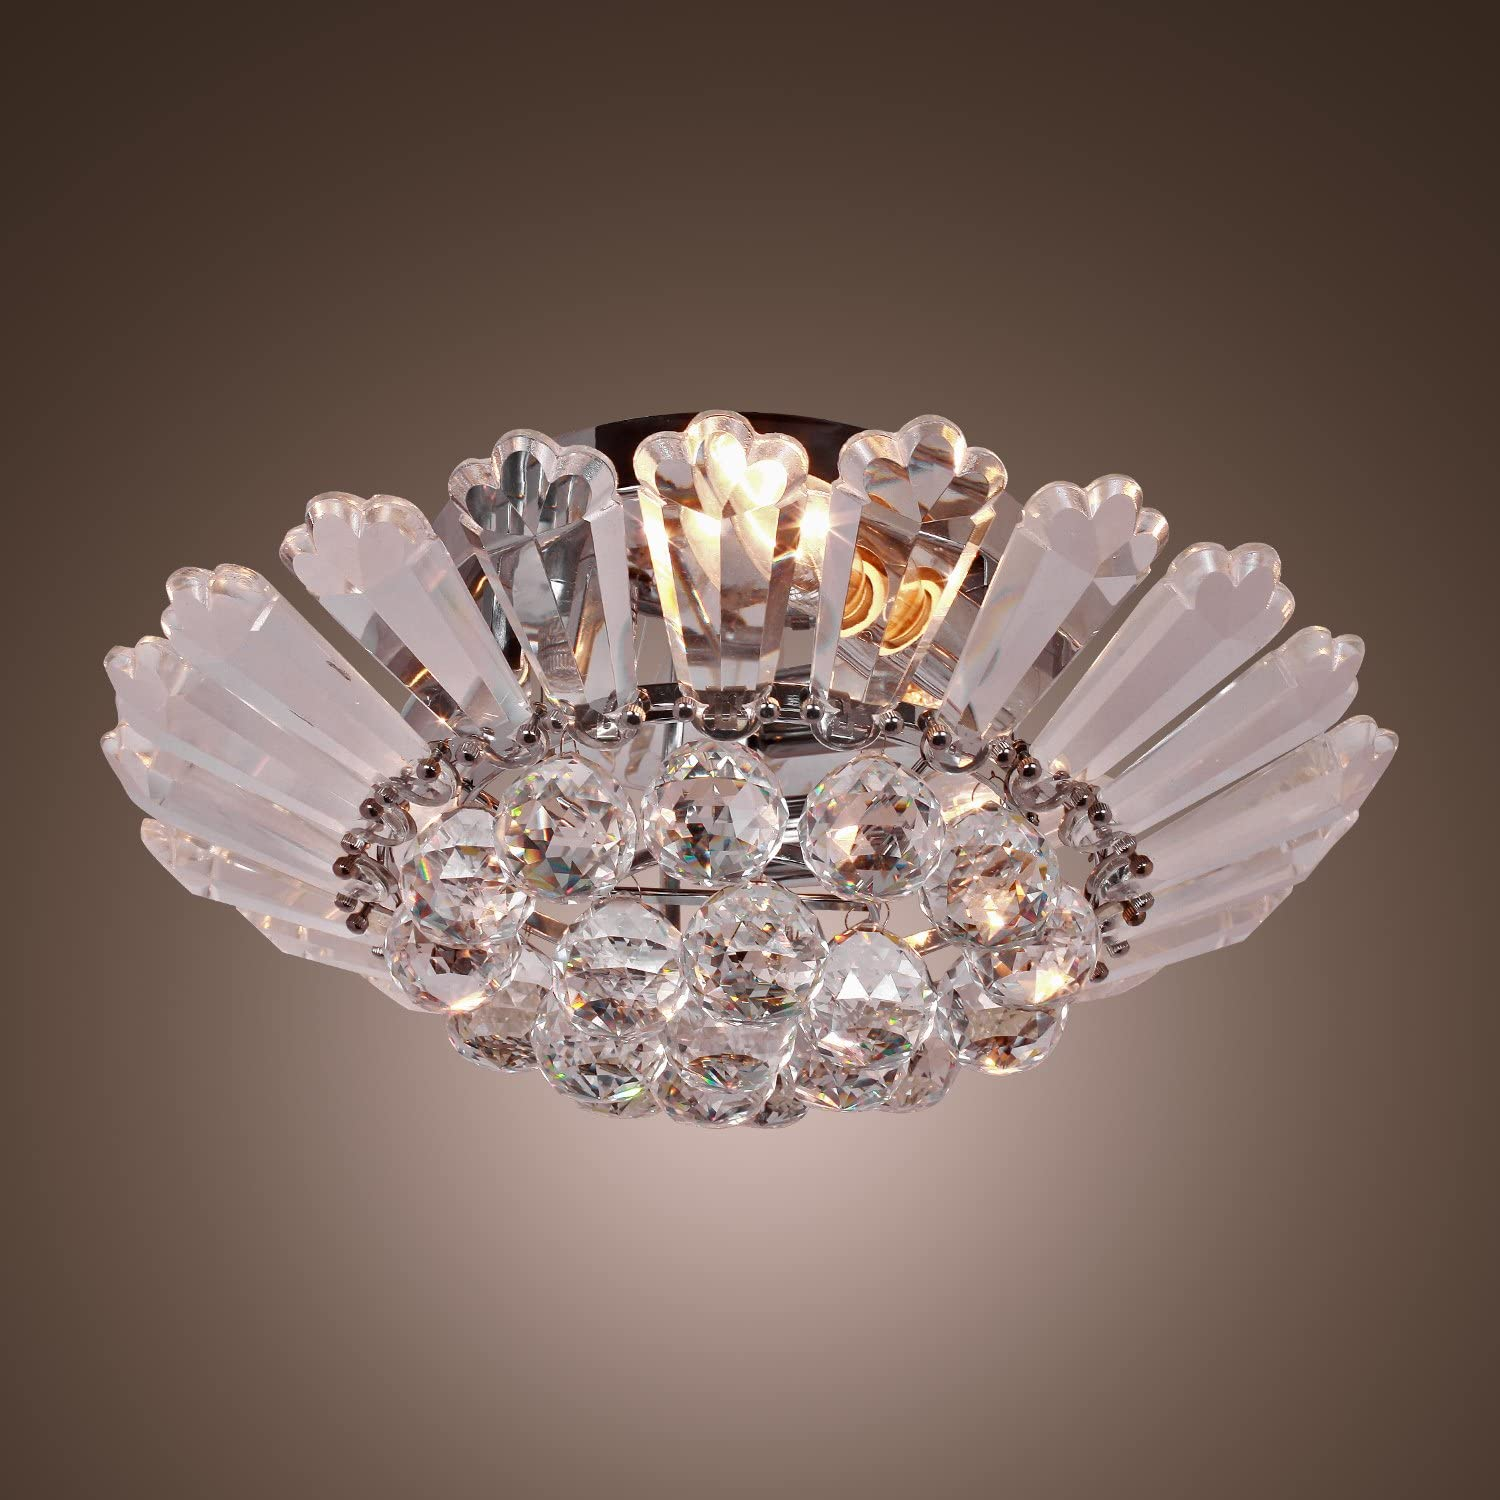 LightInTheBox Modern Semi - Flush Mount in Crystal Feature, Home Ceiling Light Fixture Chandeliers Lighting for Dining Room, Bedroom, Living Room